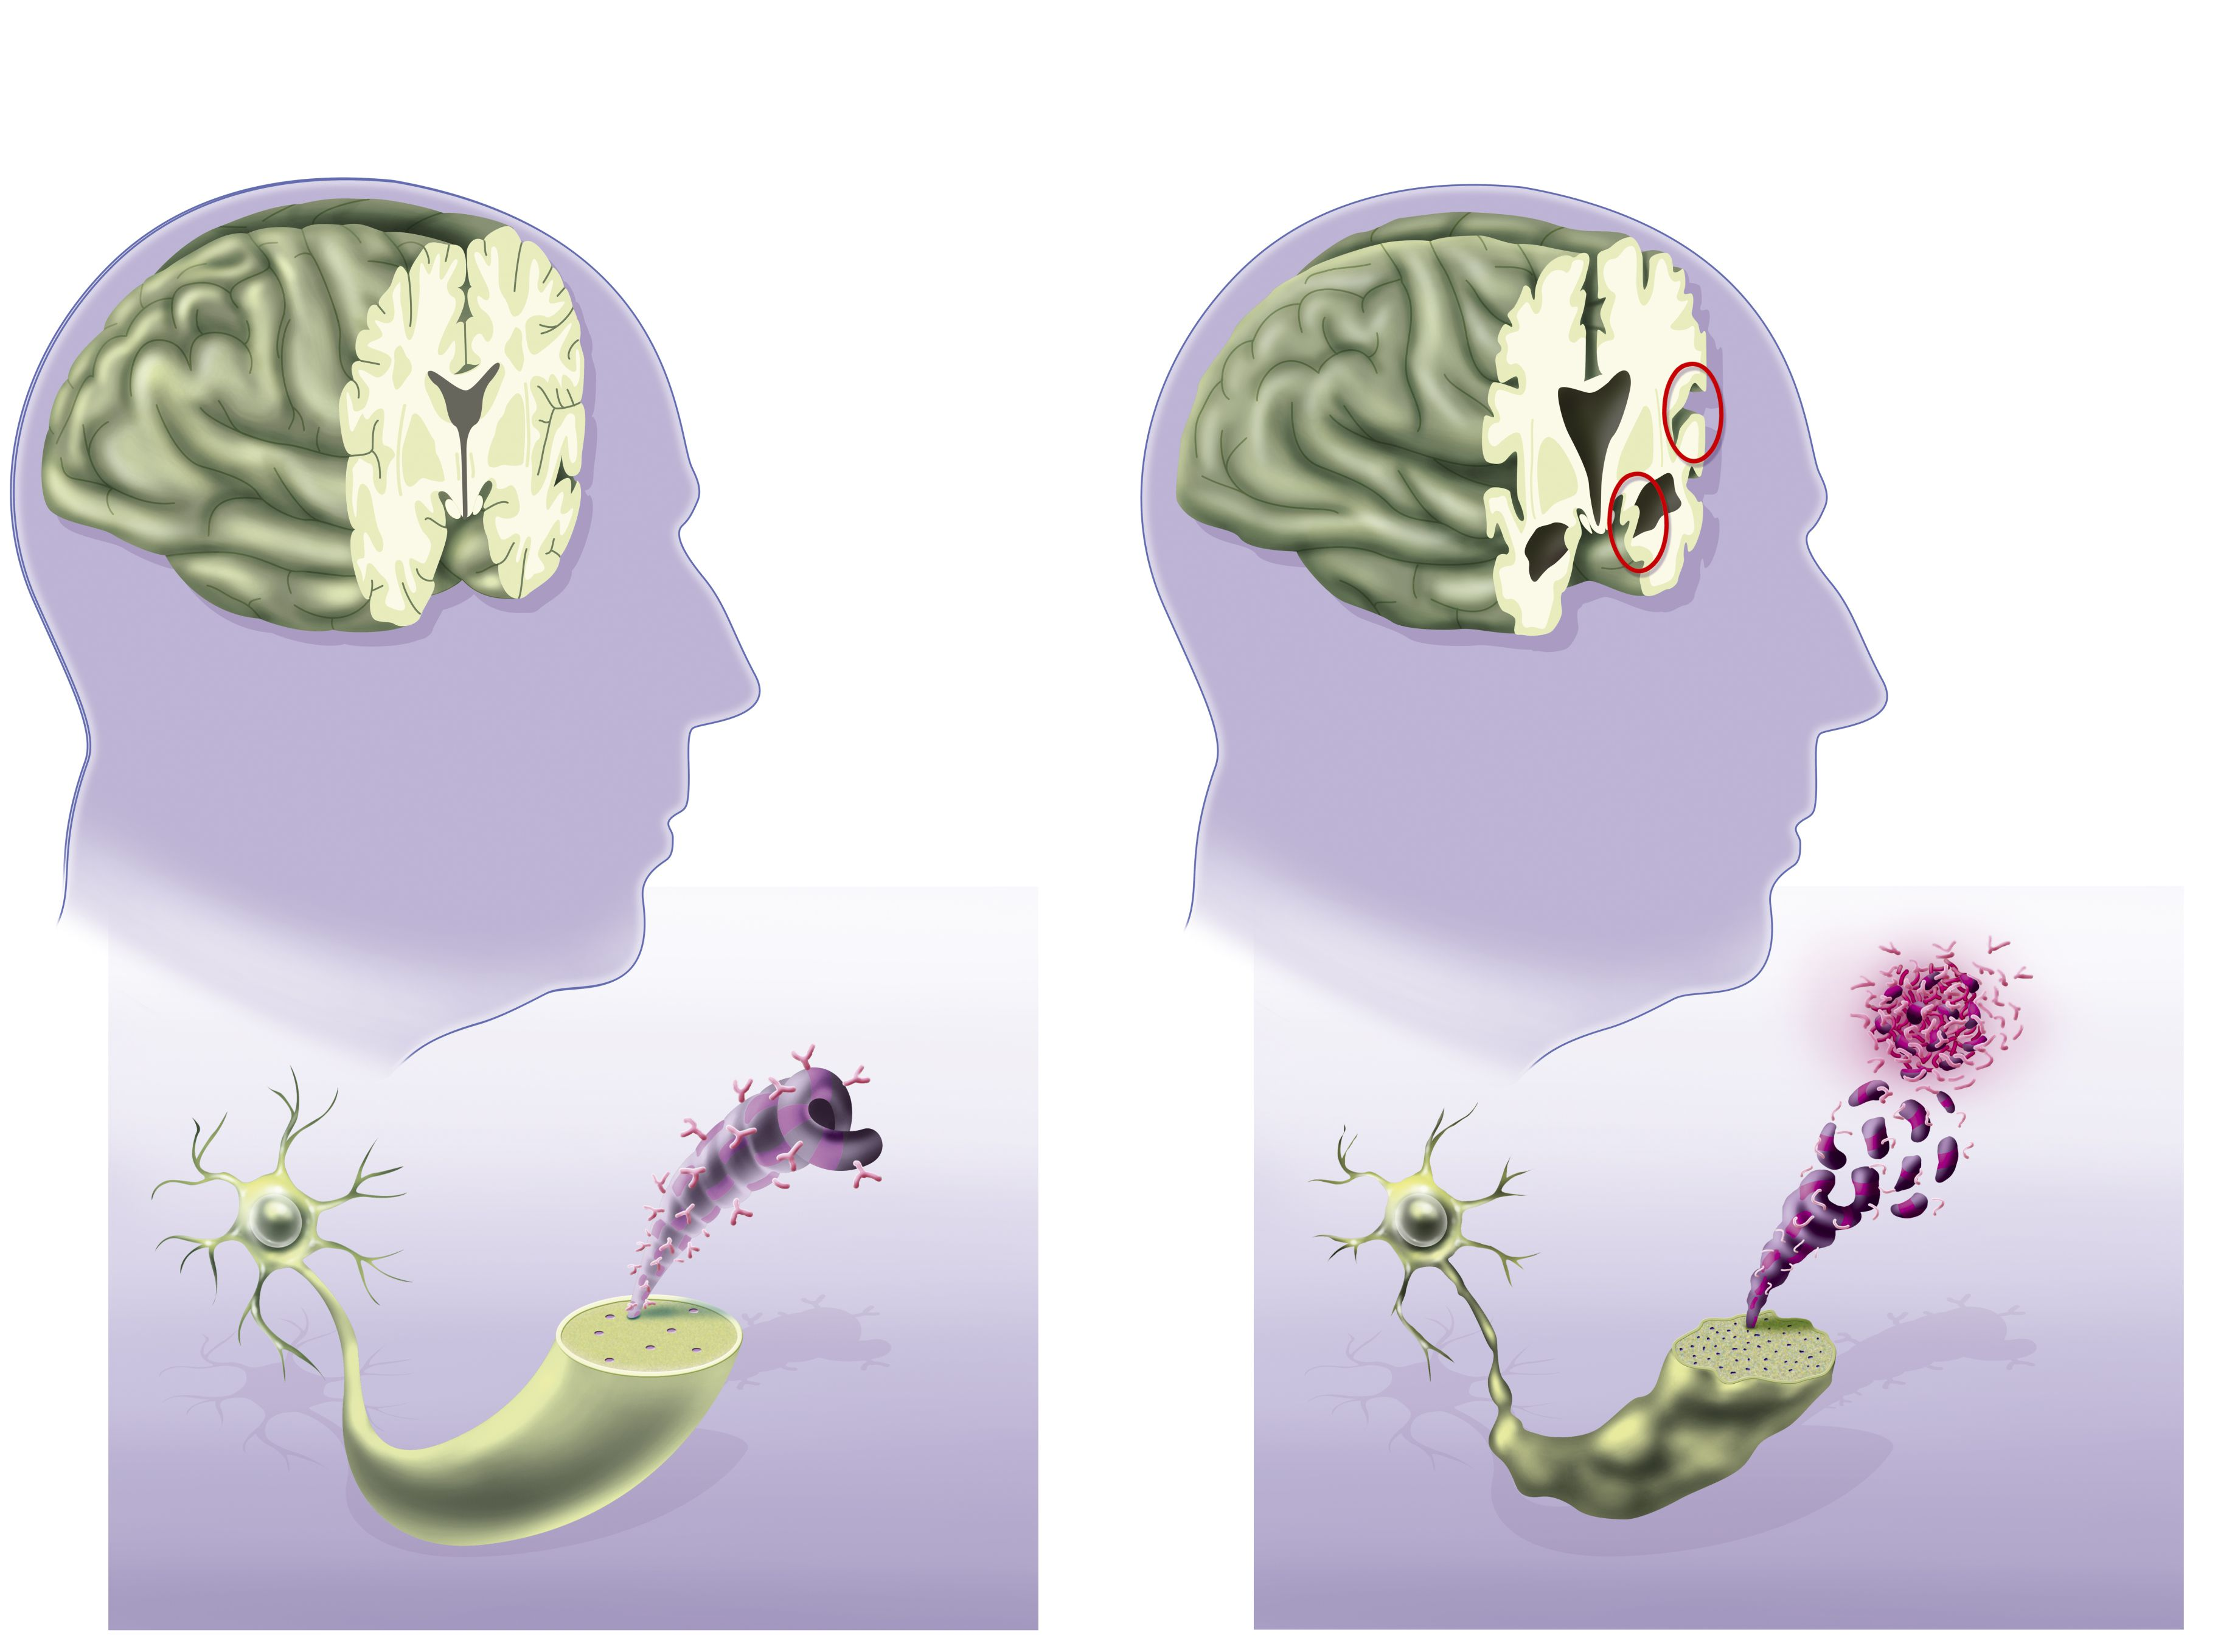 alzheimers disease 7 Alzheimer disease 7 information including symptoms, diagnosis, misdiagnosis, treatment, causes, patient stories, videos, forums, prevention, and prognosis.